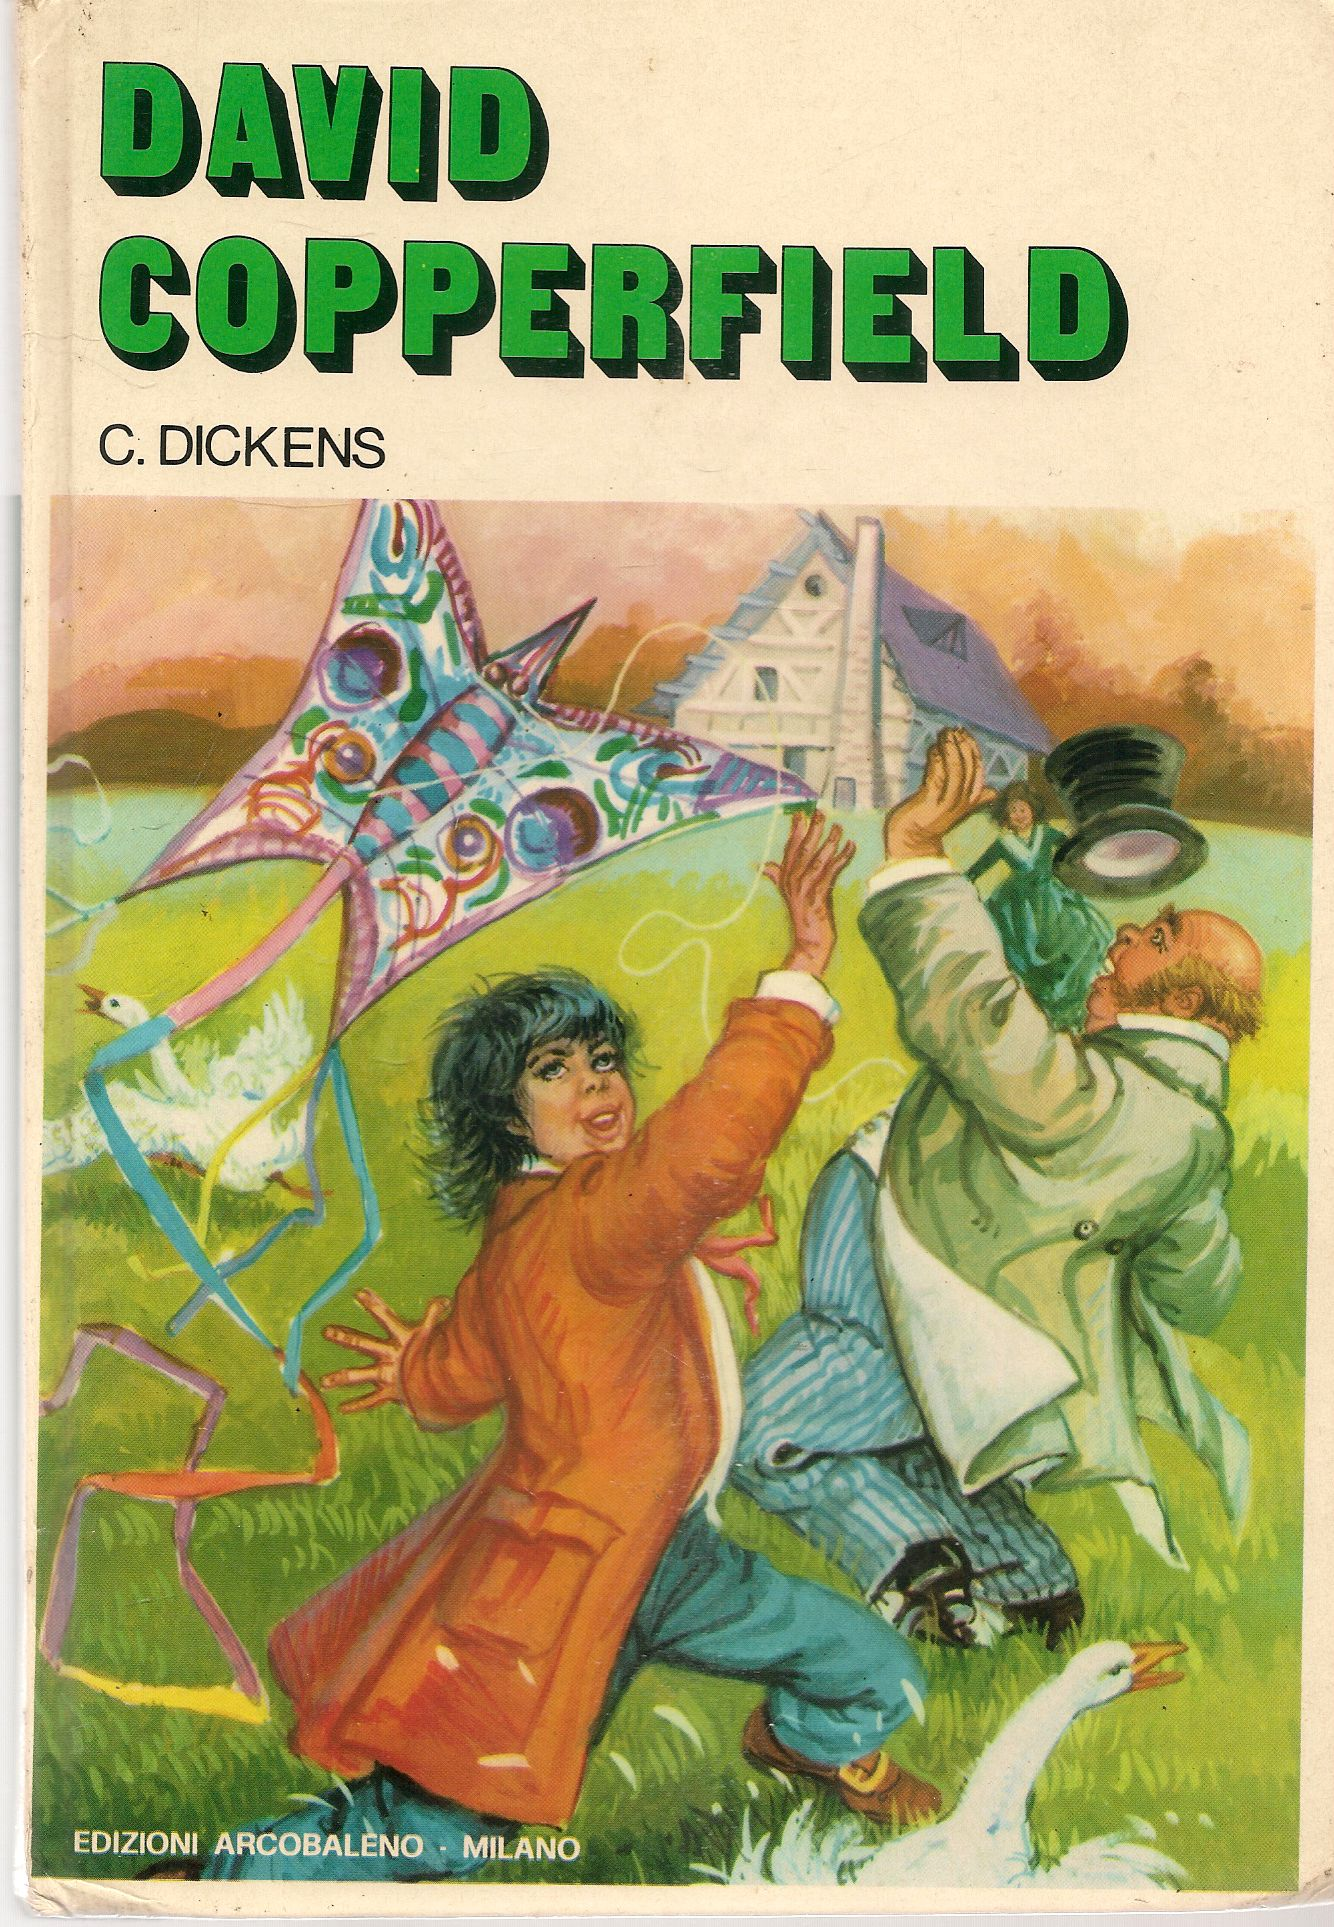 DAVID COPPERFIELD - CHARLES DICKENS - ED. ARCOBALENO 1981